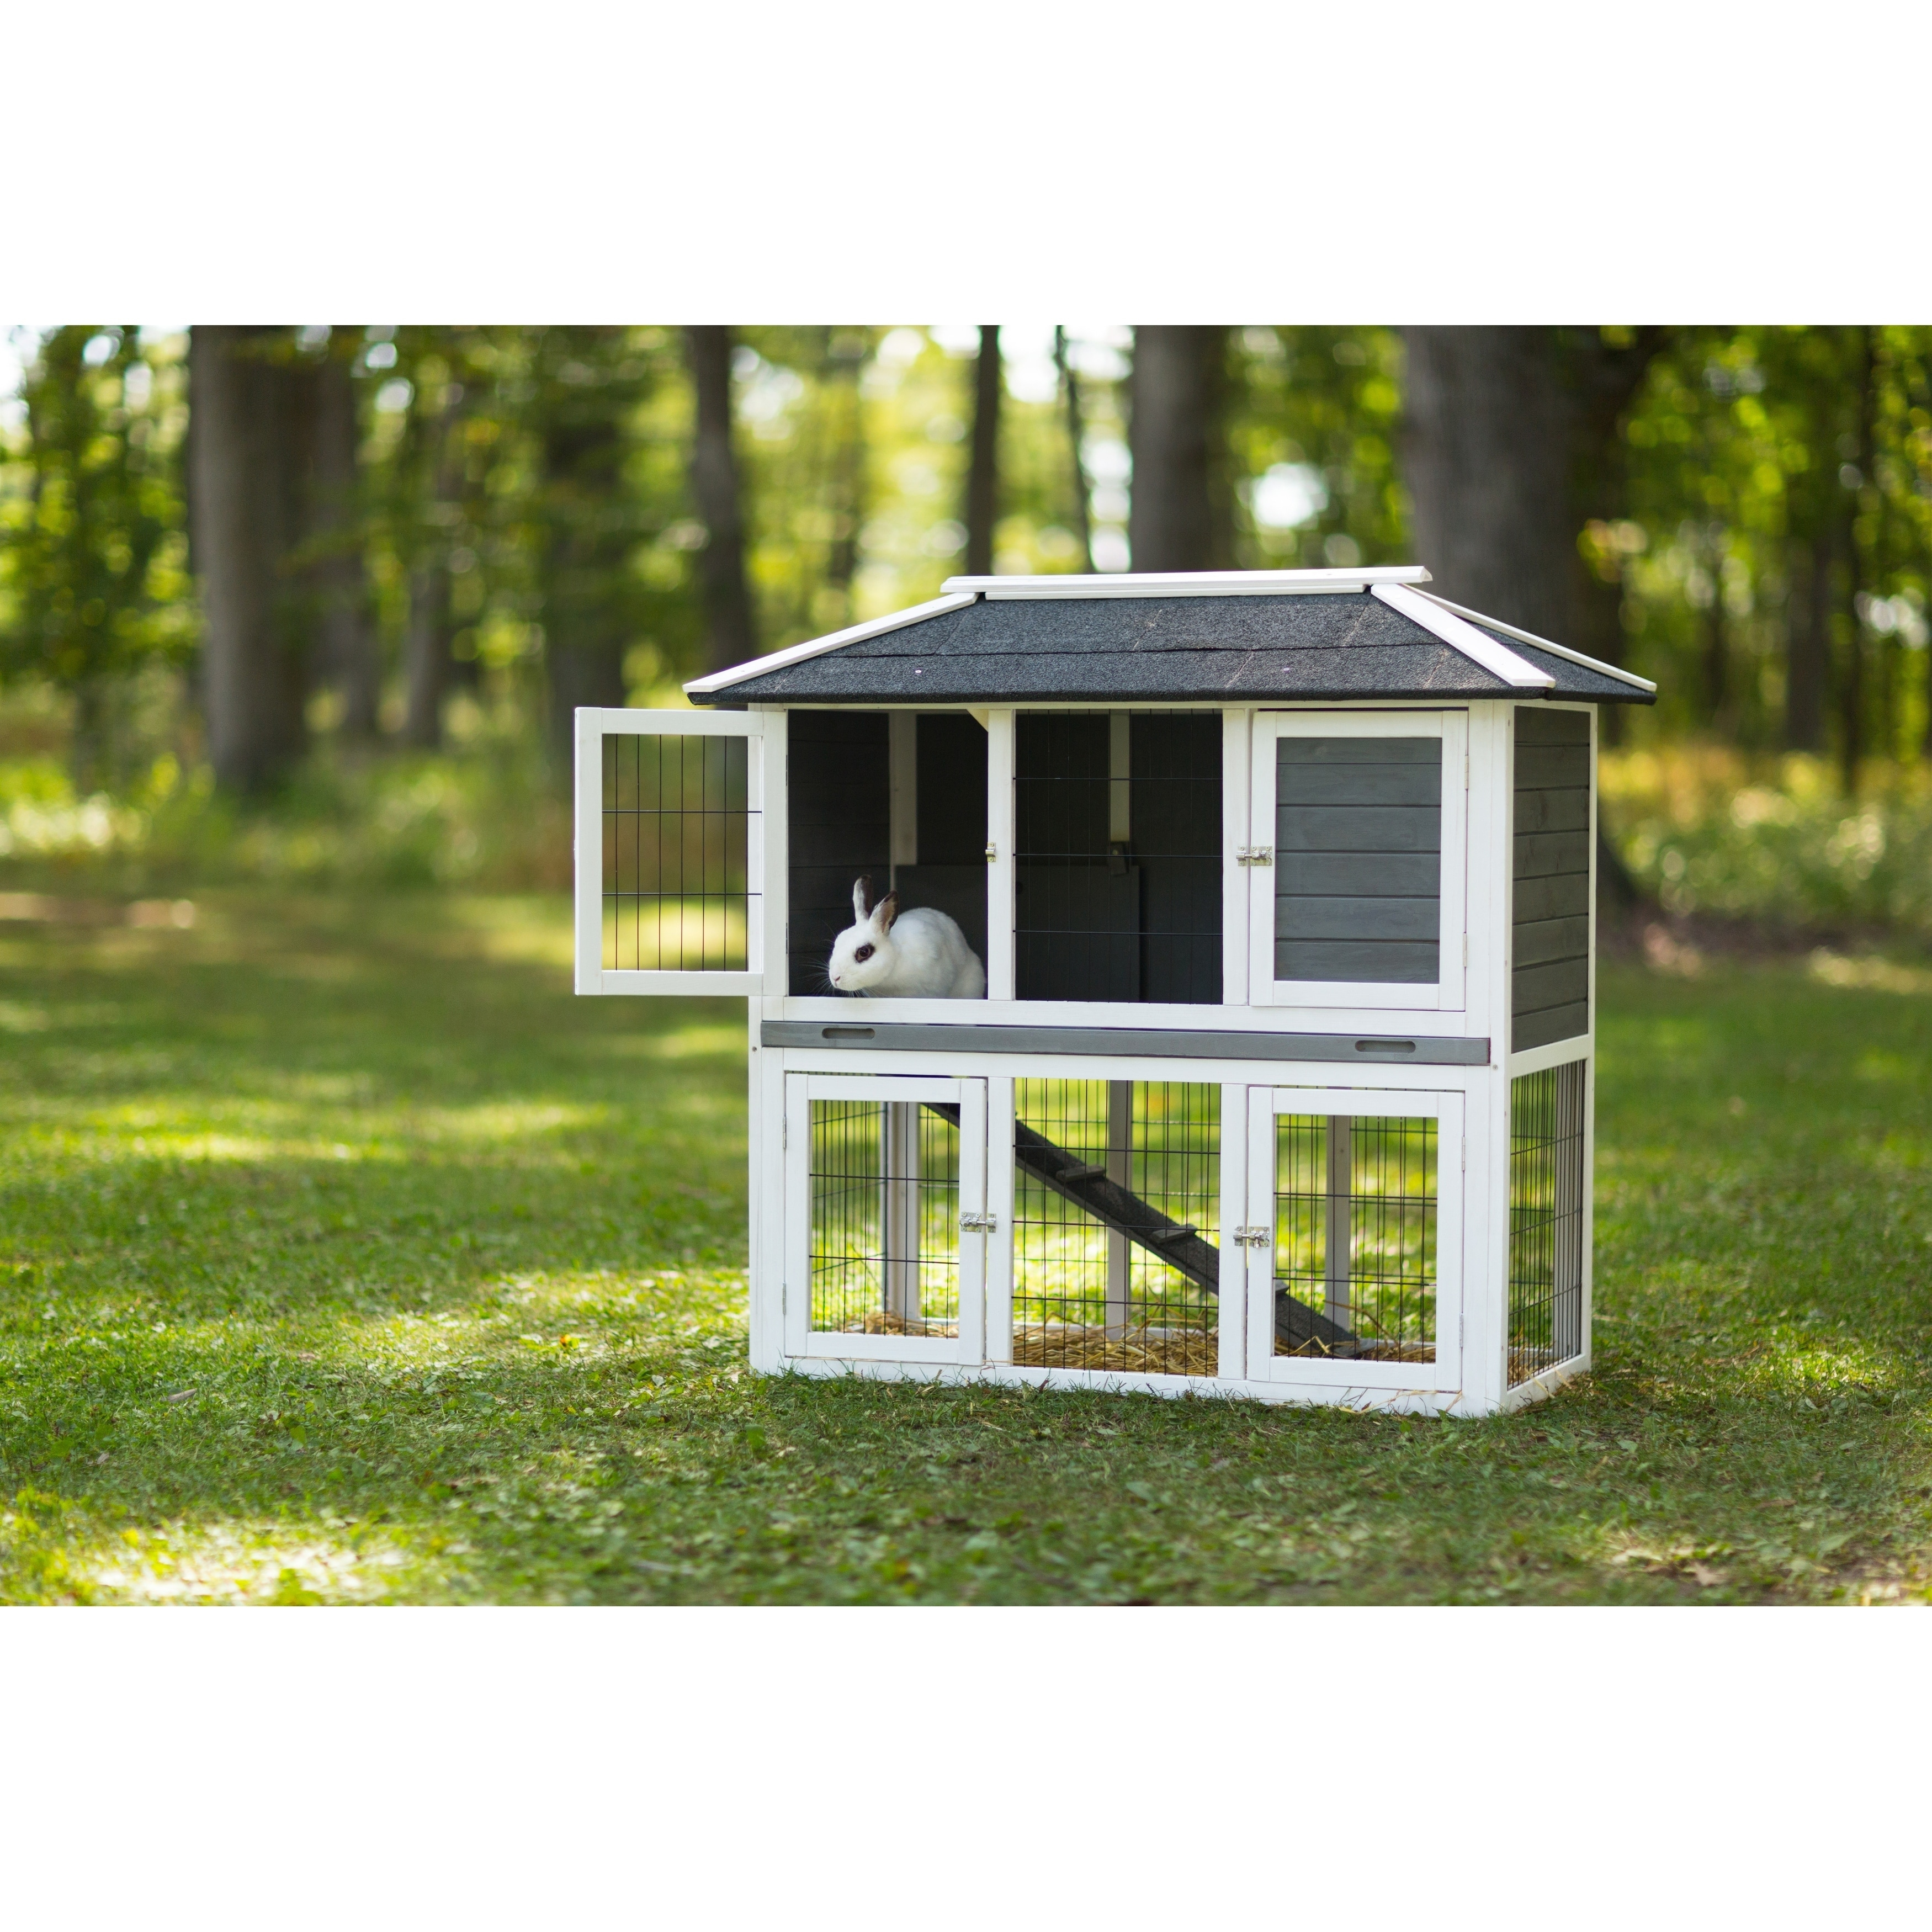 for pet hutches home rabbit kaytee sale outdoor cages super handmade dp green hutch com garden welcome amazon large